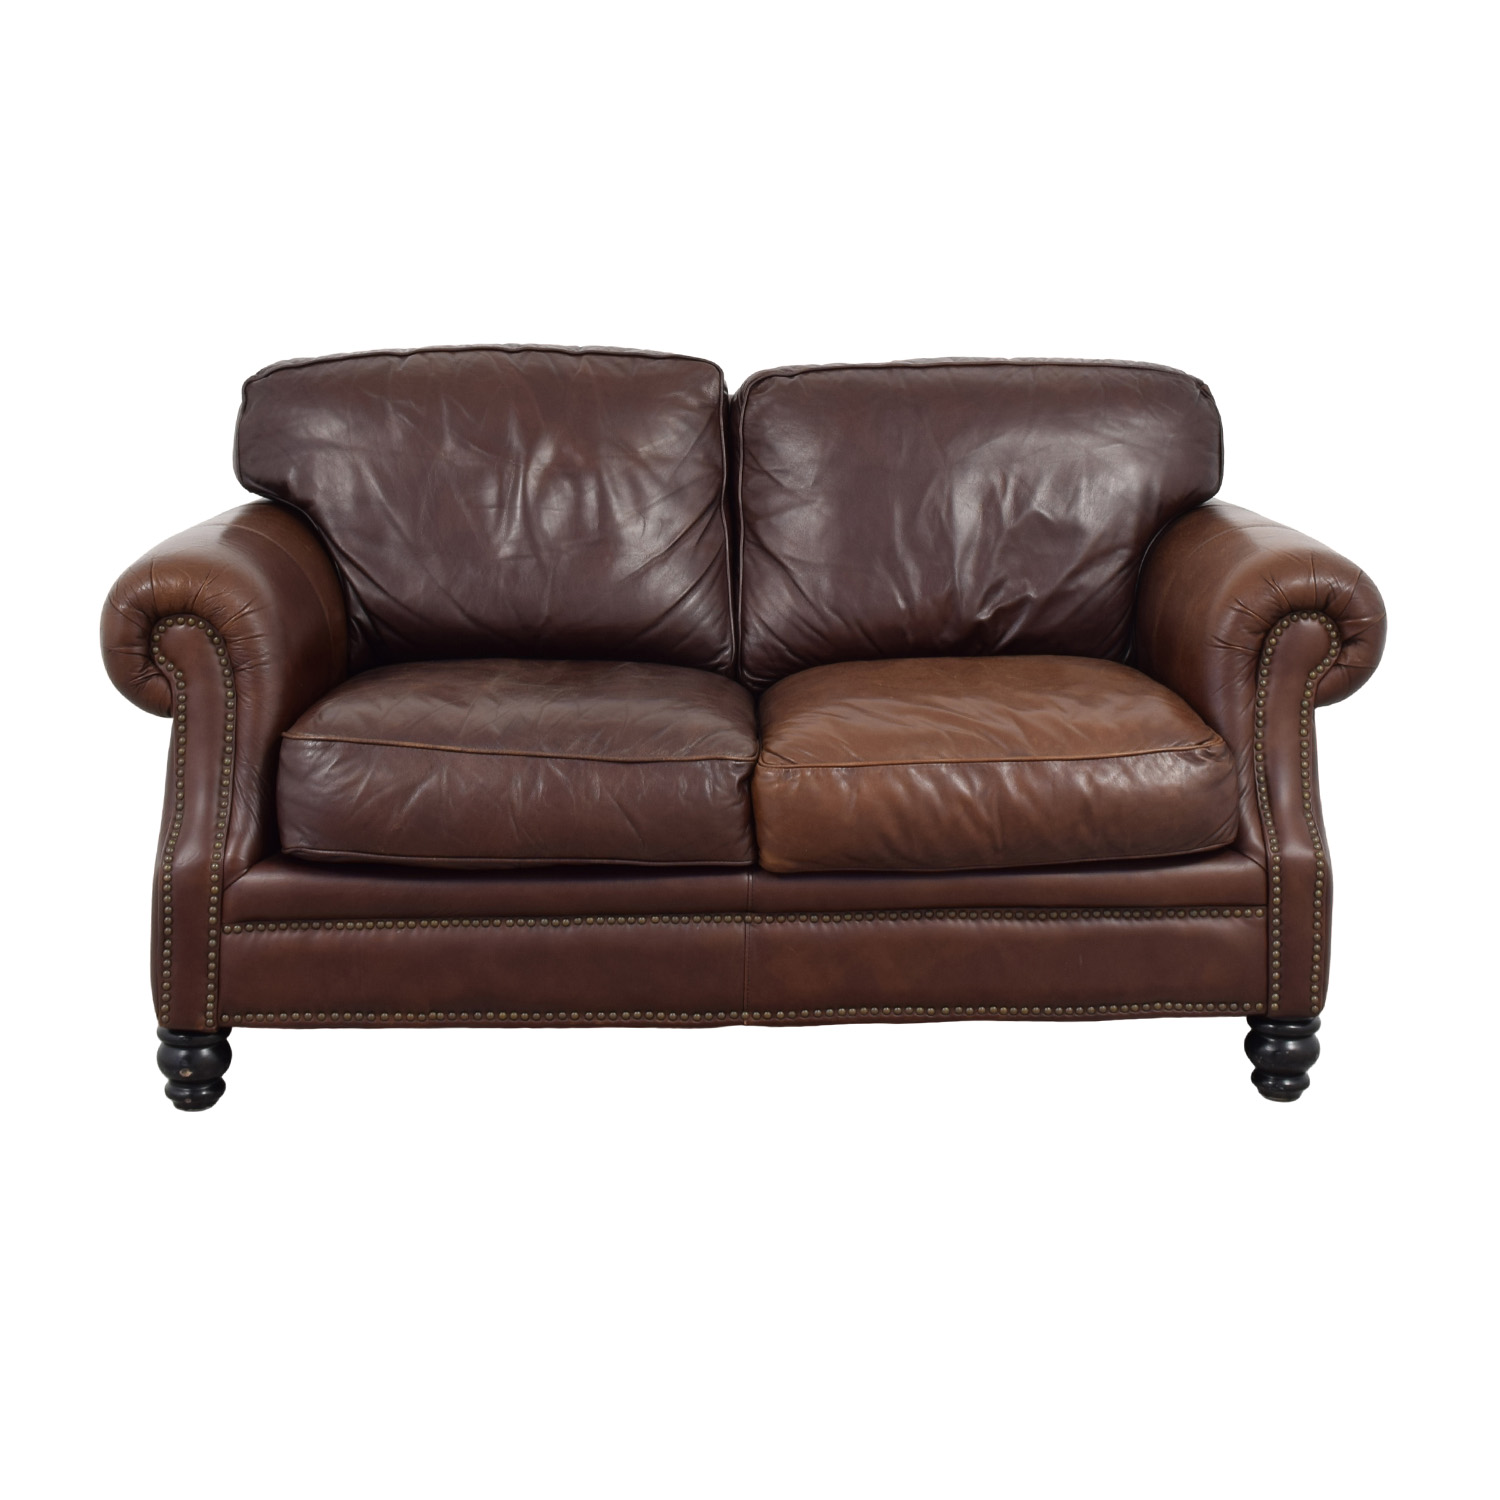 buy Bloomingdale's Brown Leather Loveseat Bloomingdale's Loveseats